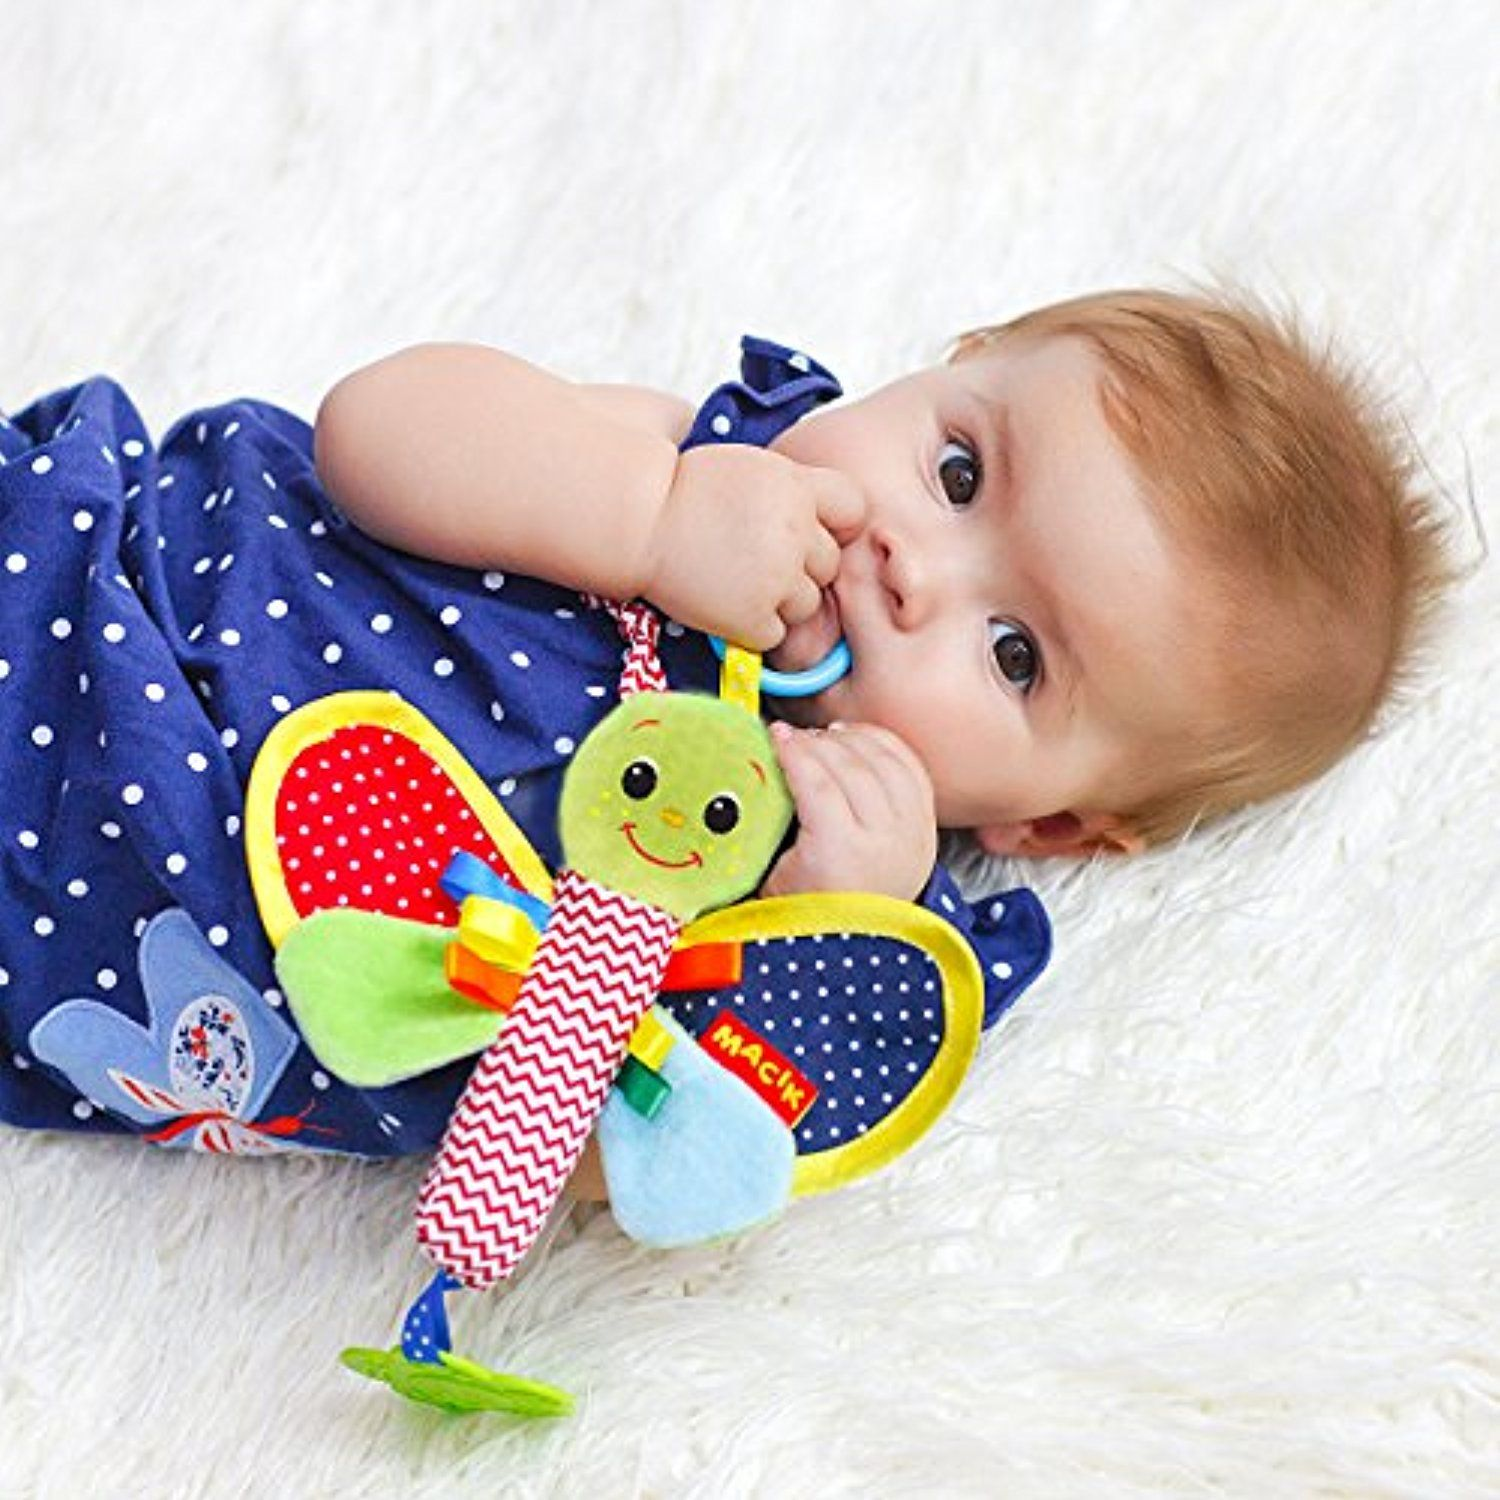 Baby Rattle Butterfly Toy Newborn Baby Toys Newborn Toys Infant